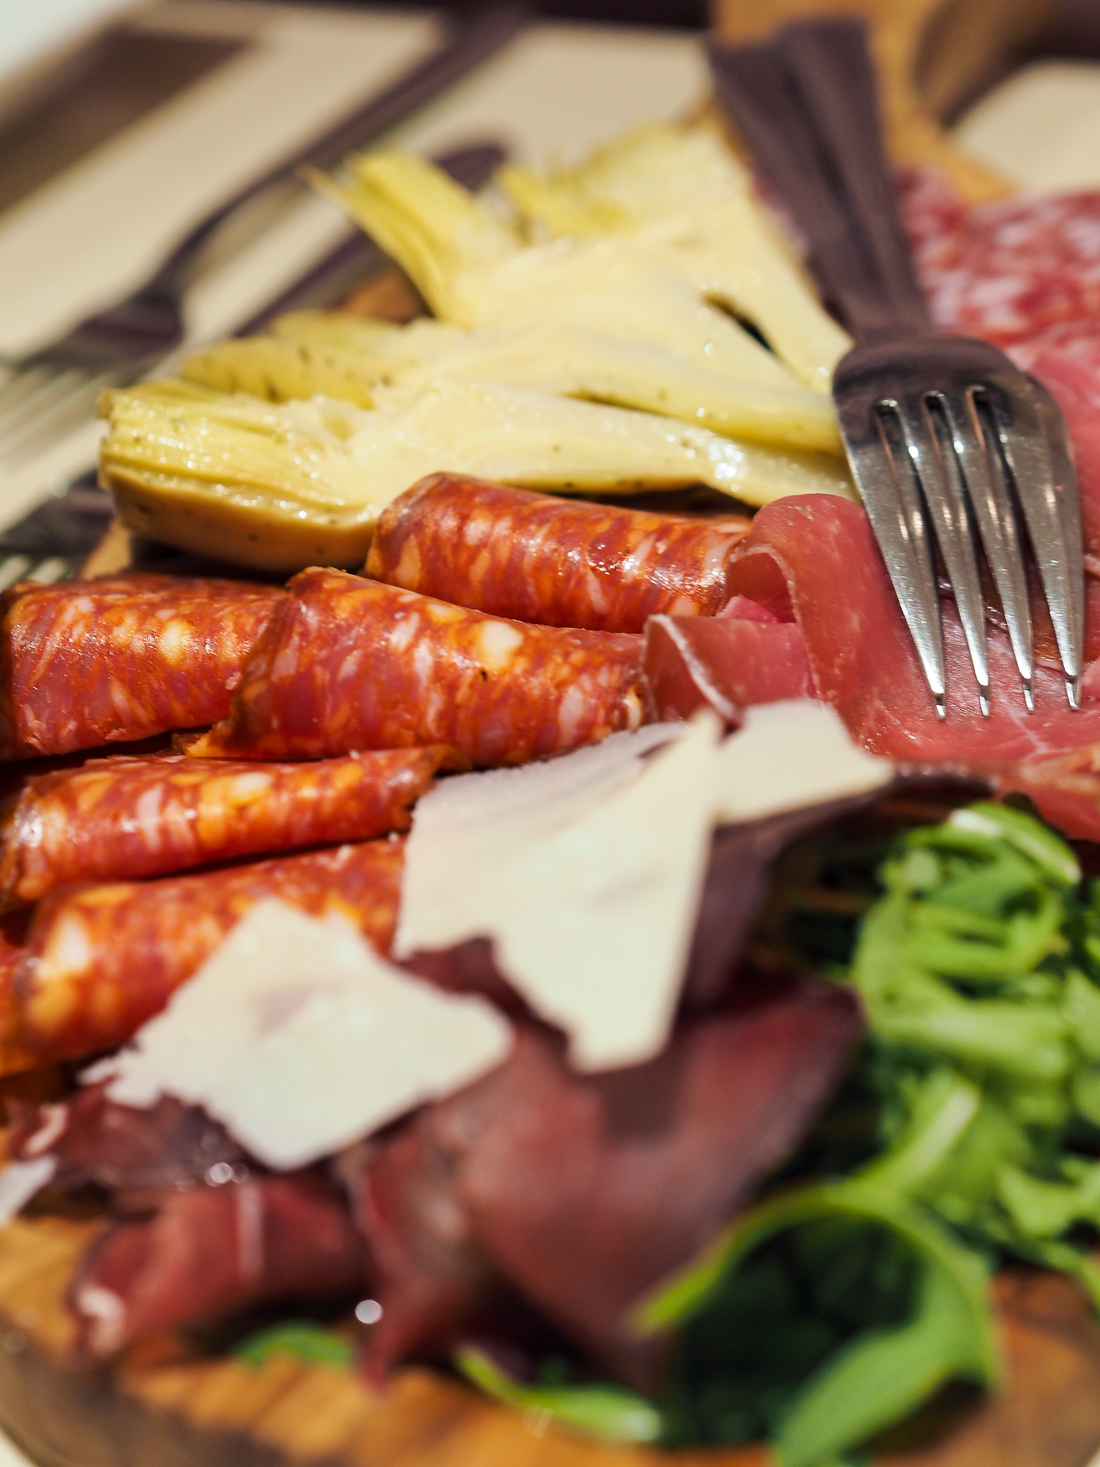 Italian cured meats and cheese